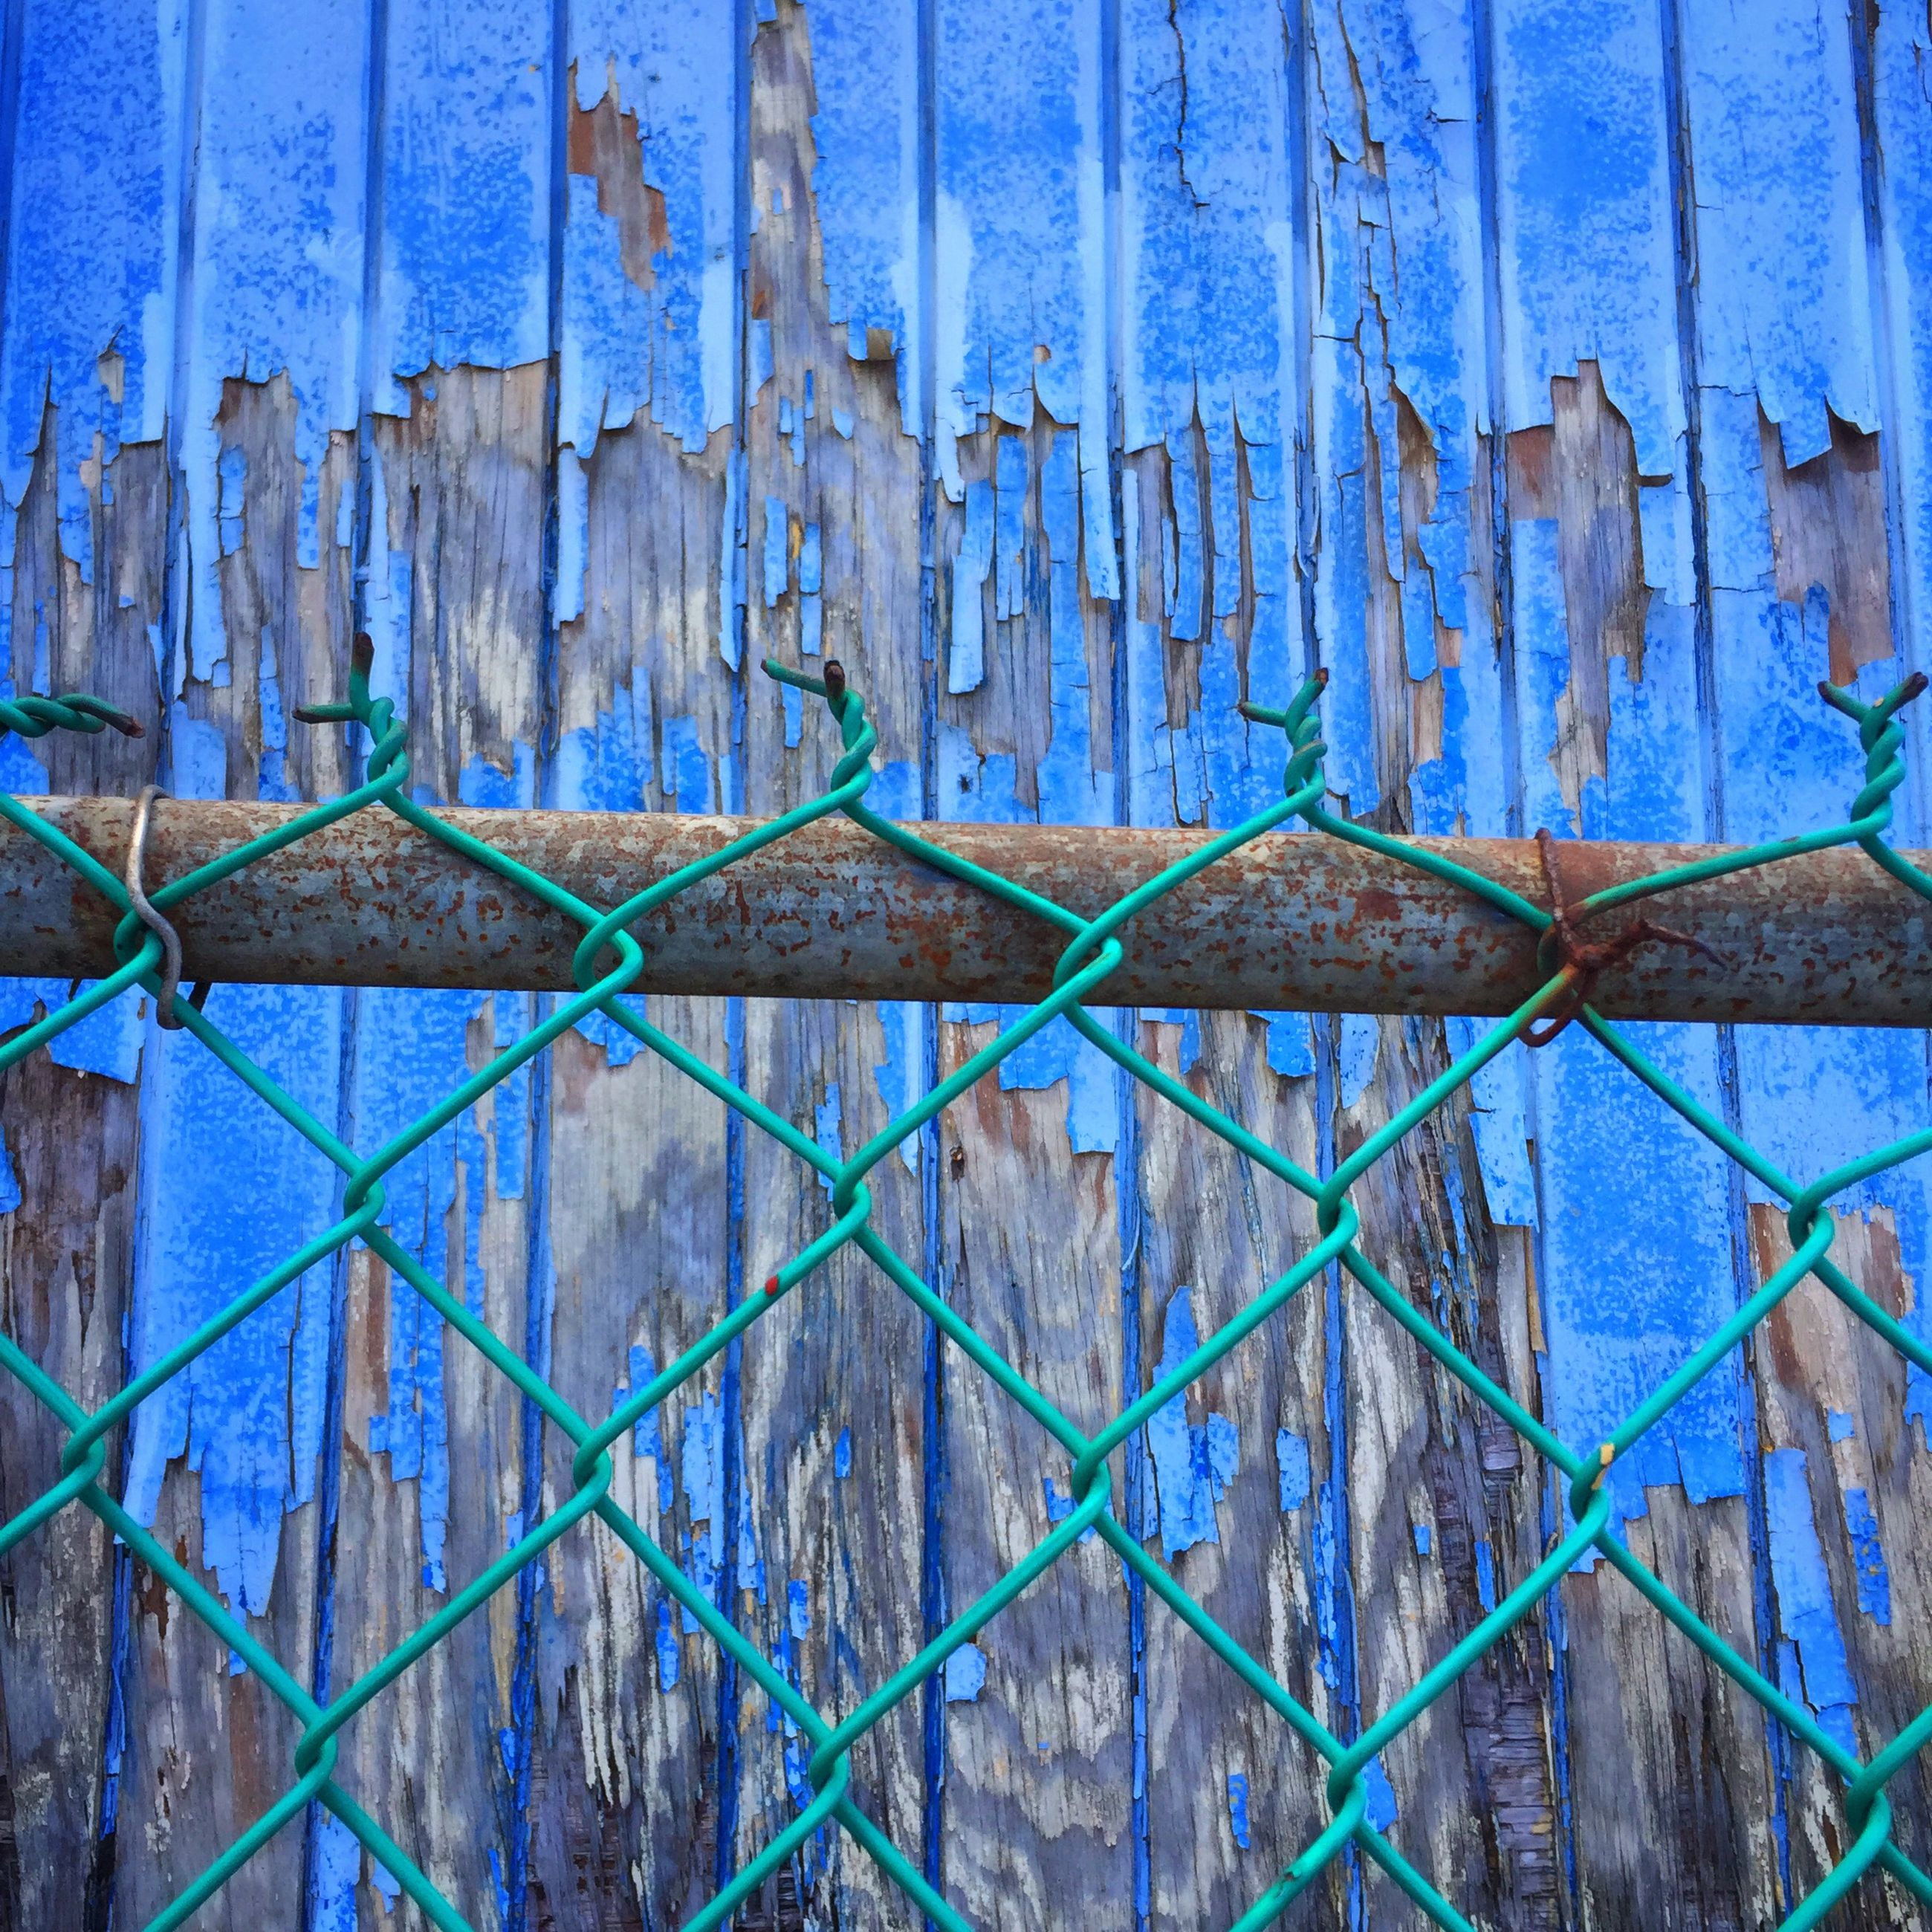 full frame, backgrounds, blue, metal, protection, built structure, pattern, safety, architecture, textured, wall - building feature, close-up, security, weathered, fence, closed, rusty, building exterior, metallic, old